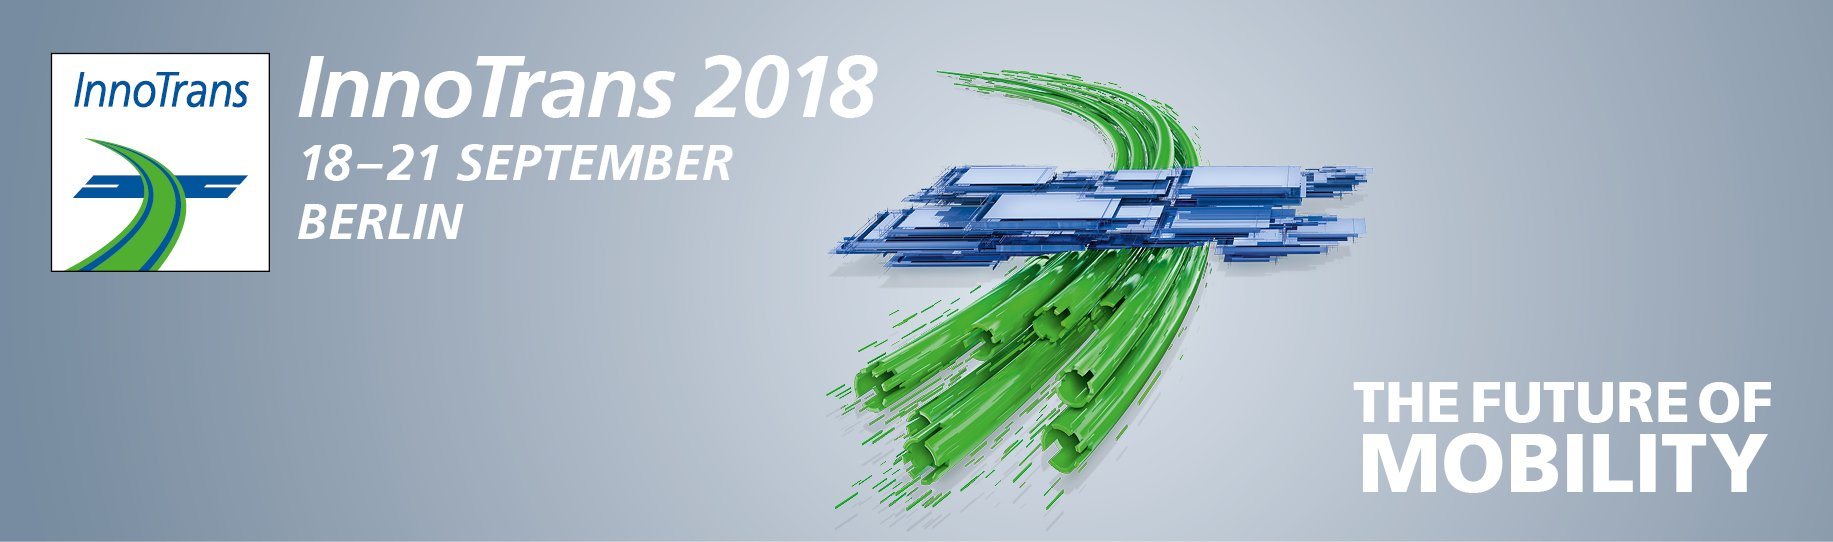 Nordlift at InnoTrans 2018 in Berlin, Hall B, stand 304.